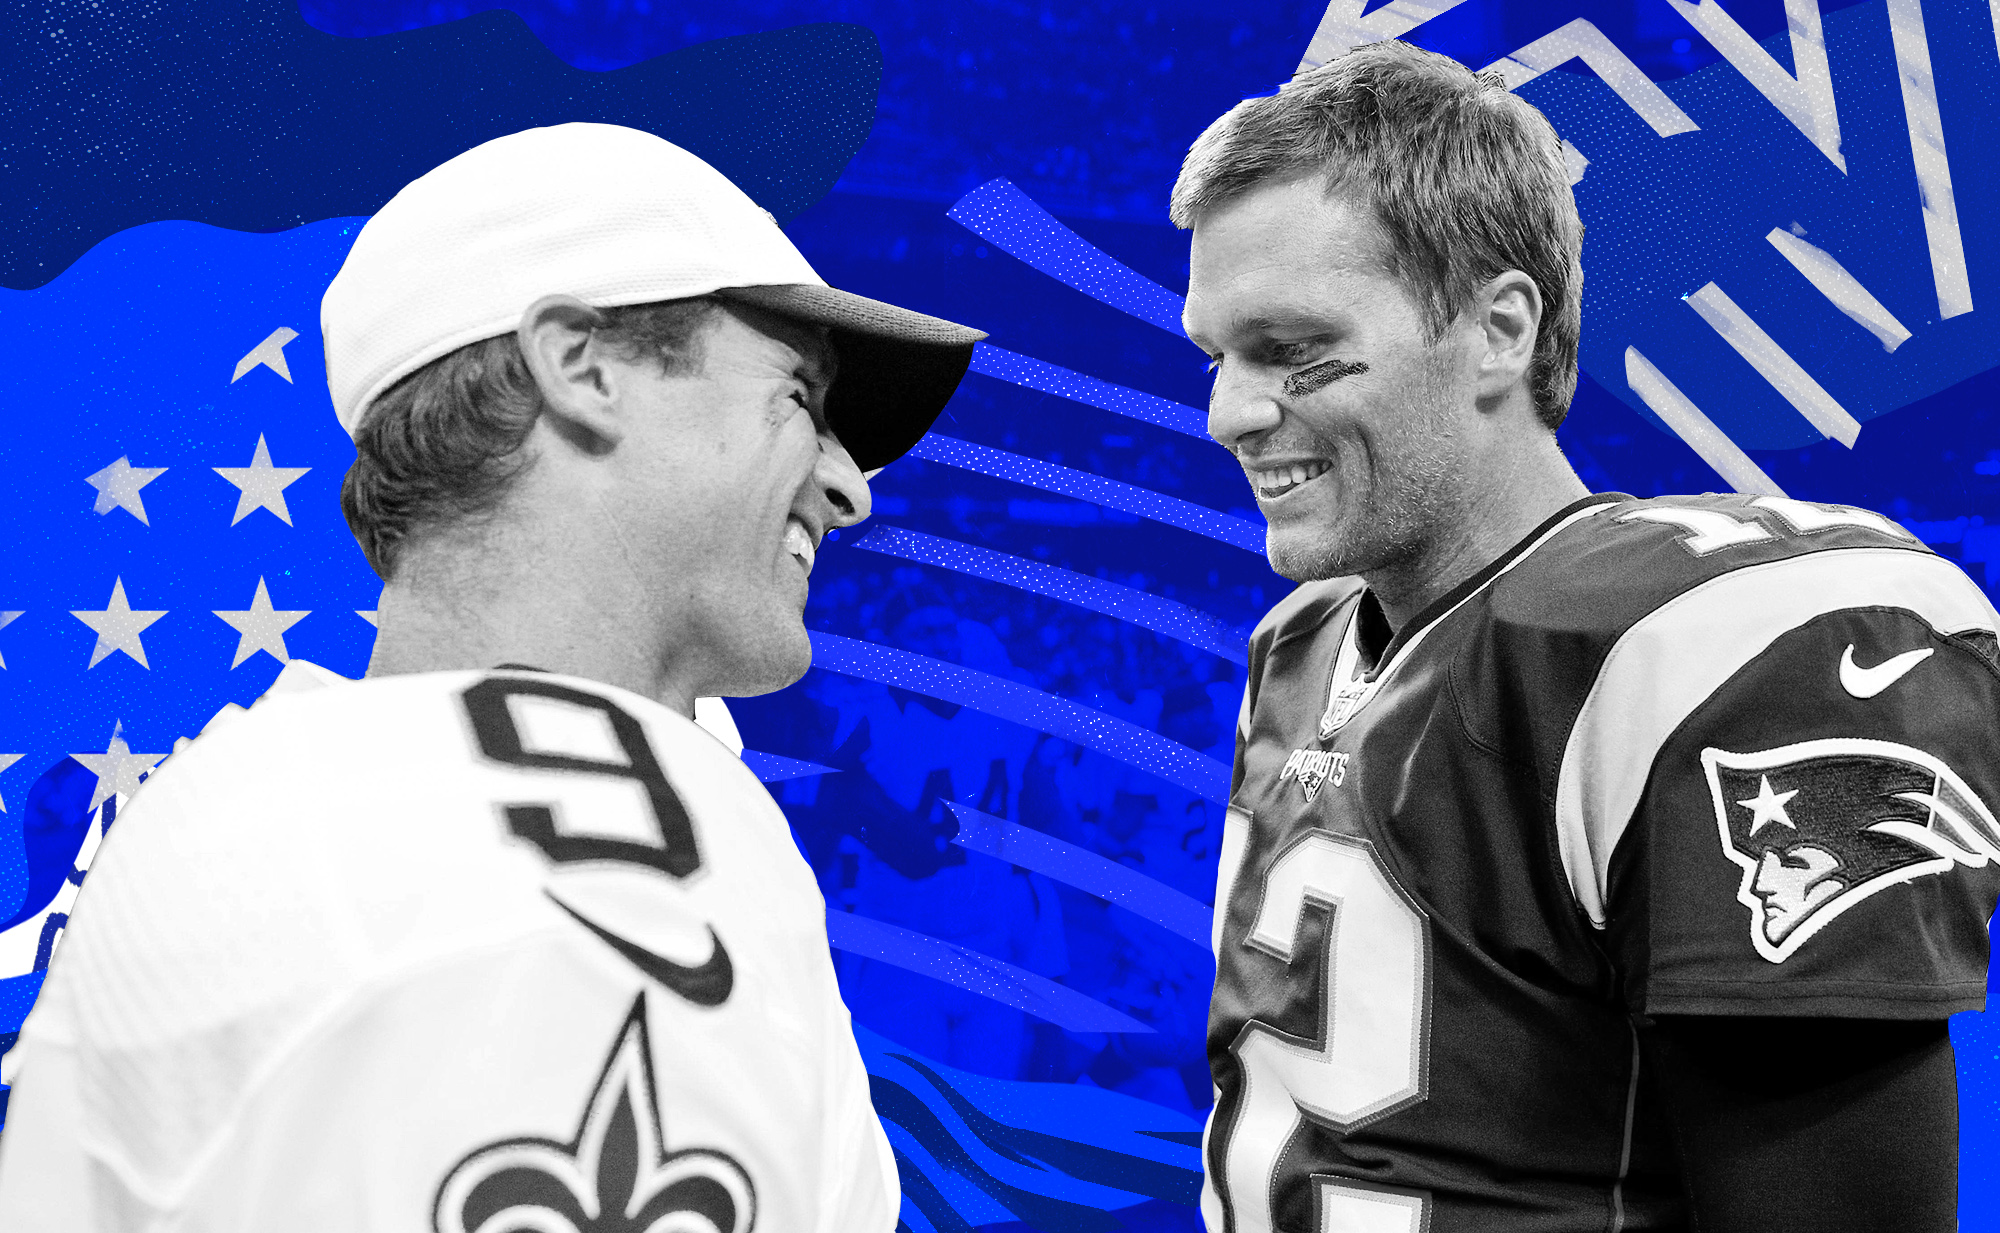 Tom Brady, Drew Brees smile at each other